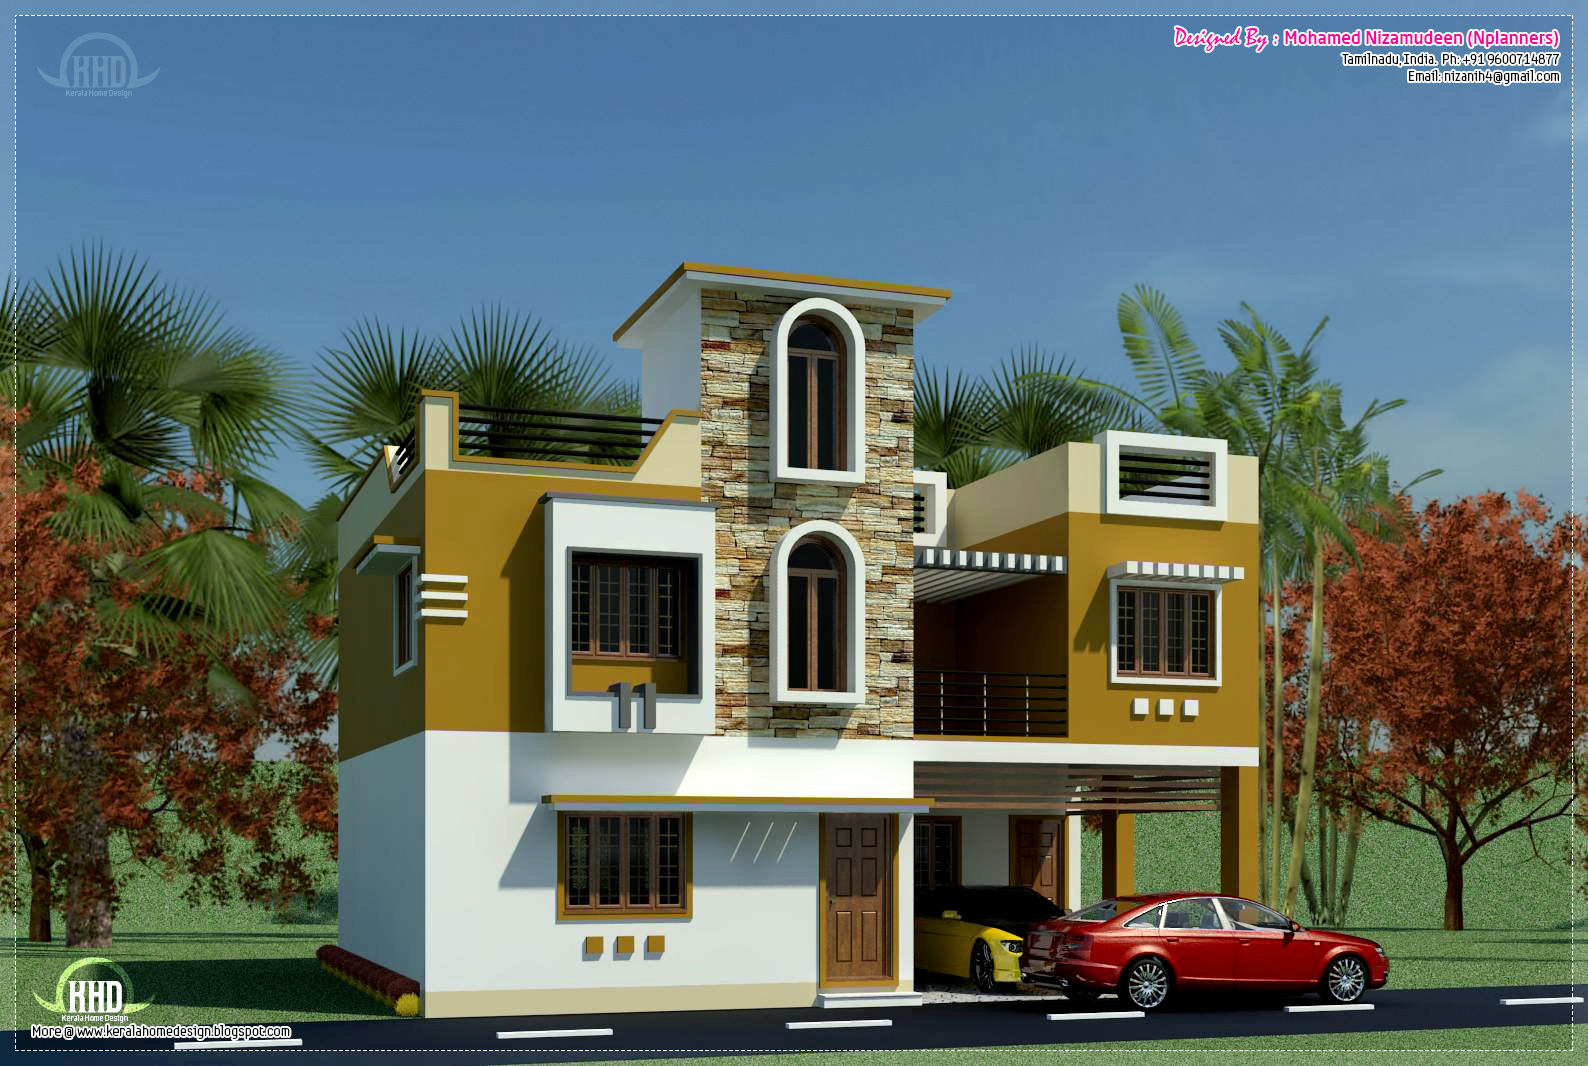 Siddu buzz online kerala home design Indian home exterior design photos